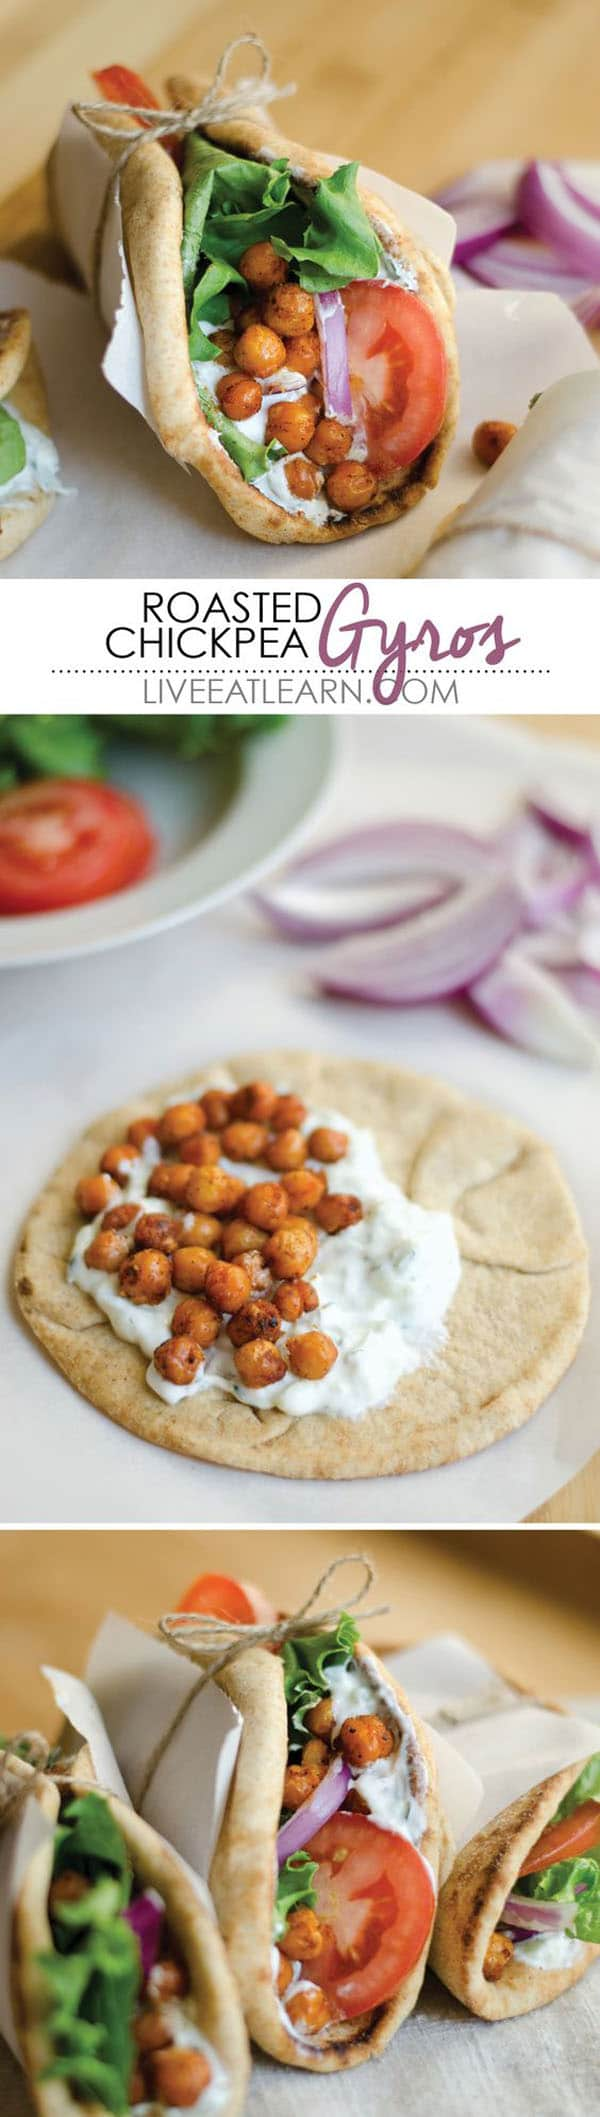 This Roasted Chickpea Gyros recipe is an easy and delicious Mediterranean inspired wrap with refreshing tzatziki sauce. The perfect vegetarian dinner or lunch! #vegetarianrecipes #veganrecipes #vegetarian #sandwich #healthyrecipes #chickpeas #dinnerrecipes #easydinners #weeknightdinners #gyros #tzatziki